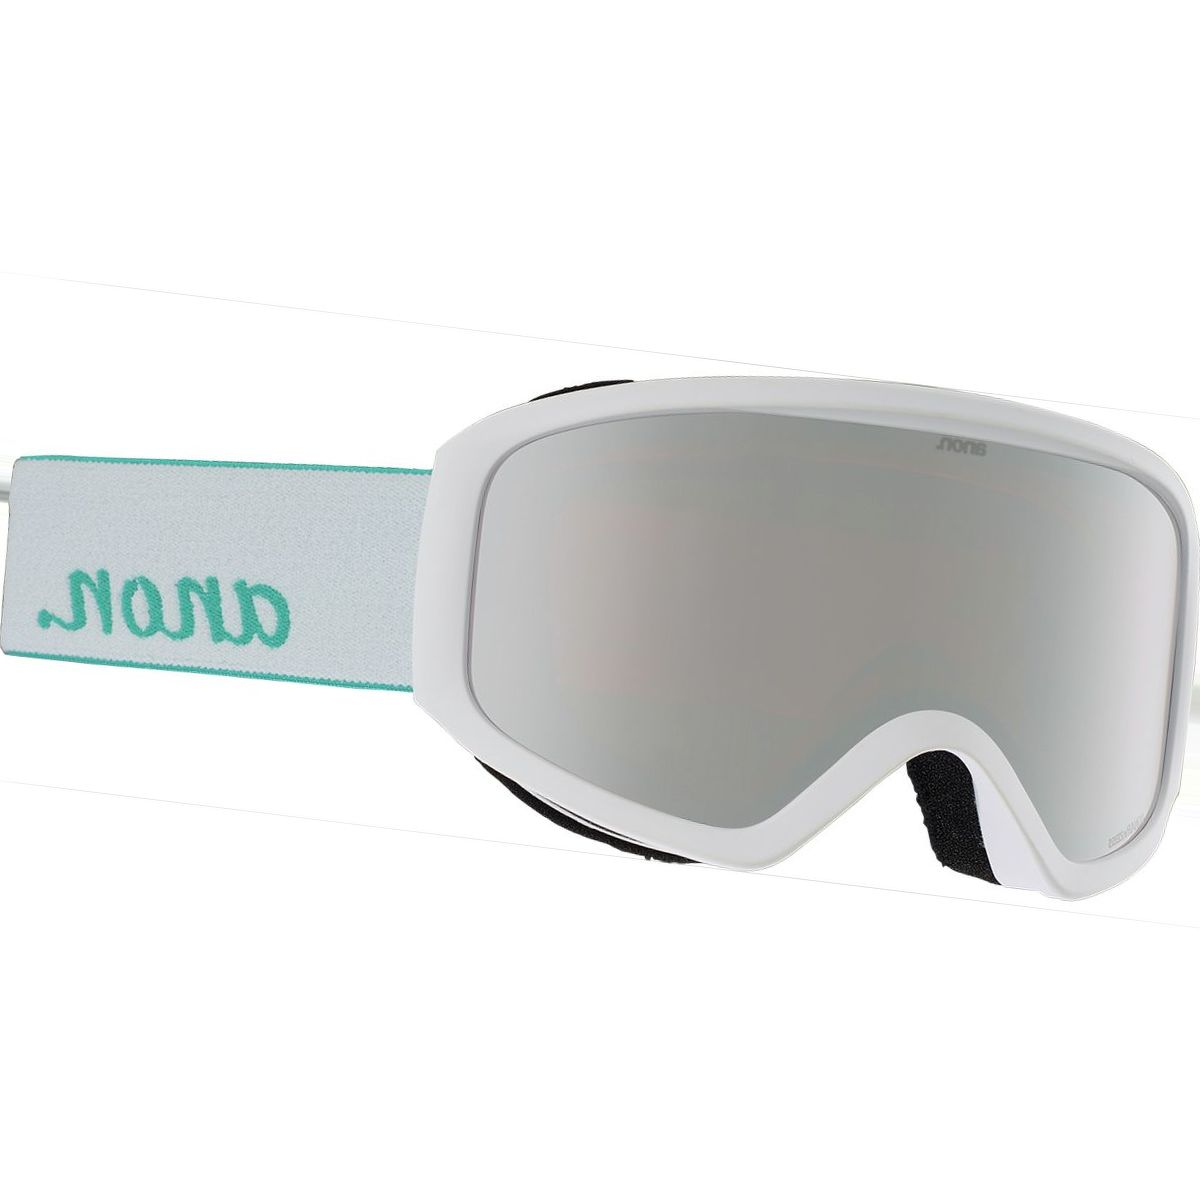 Anon Insight Sonar Goggles - Women's